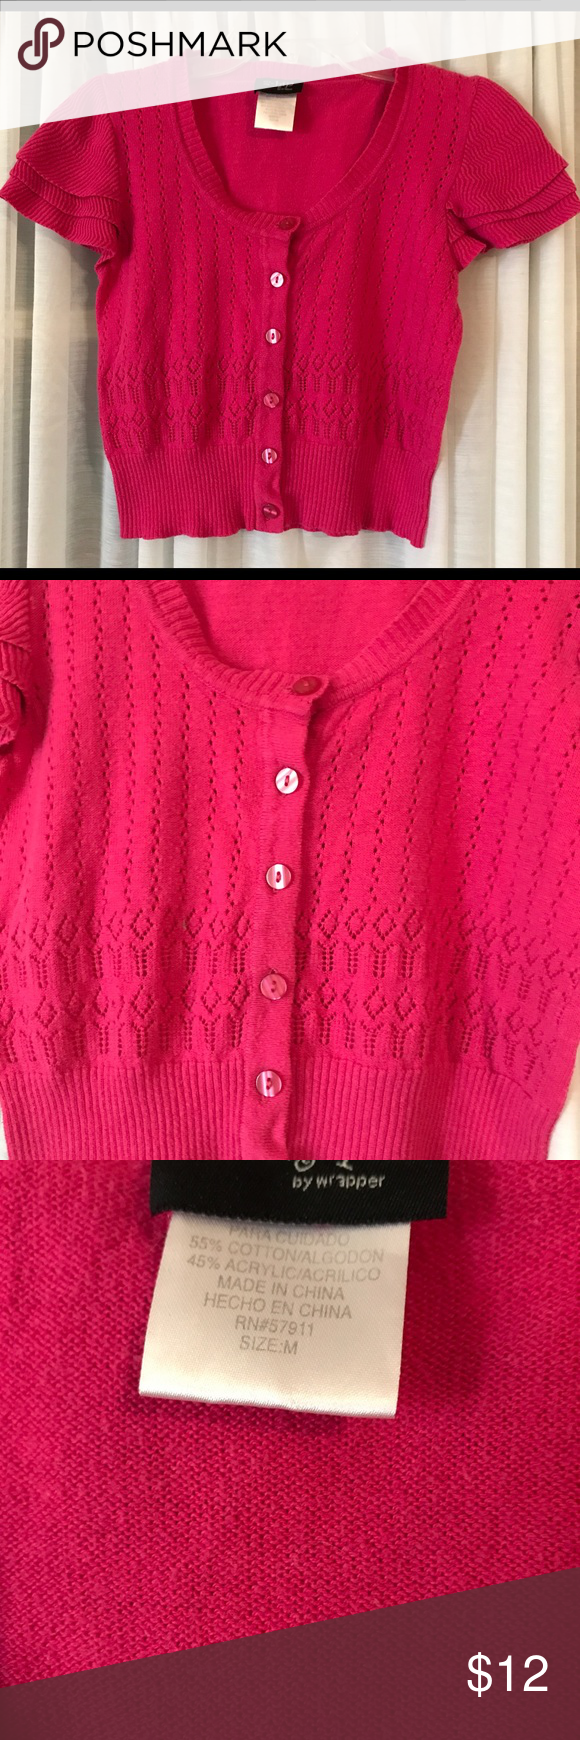 Girl's pink sweater top M button front 2-hip brand | Layering